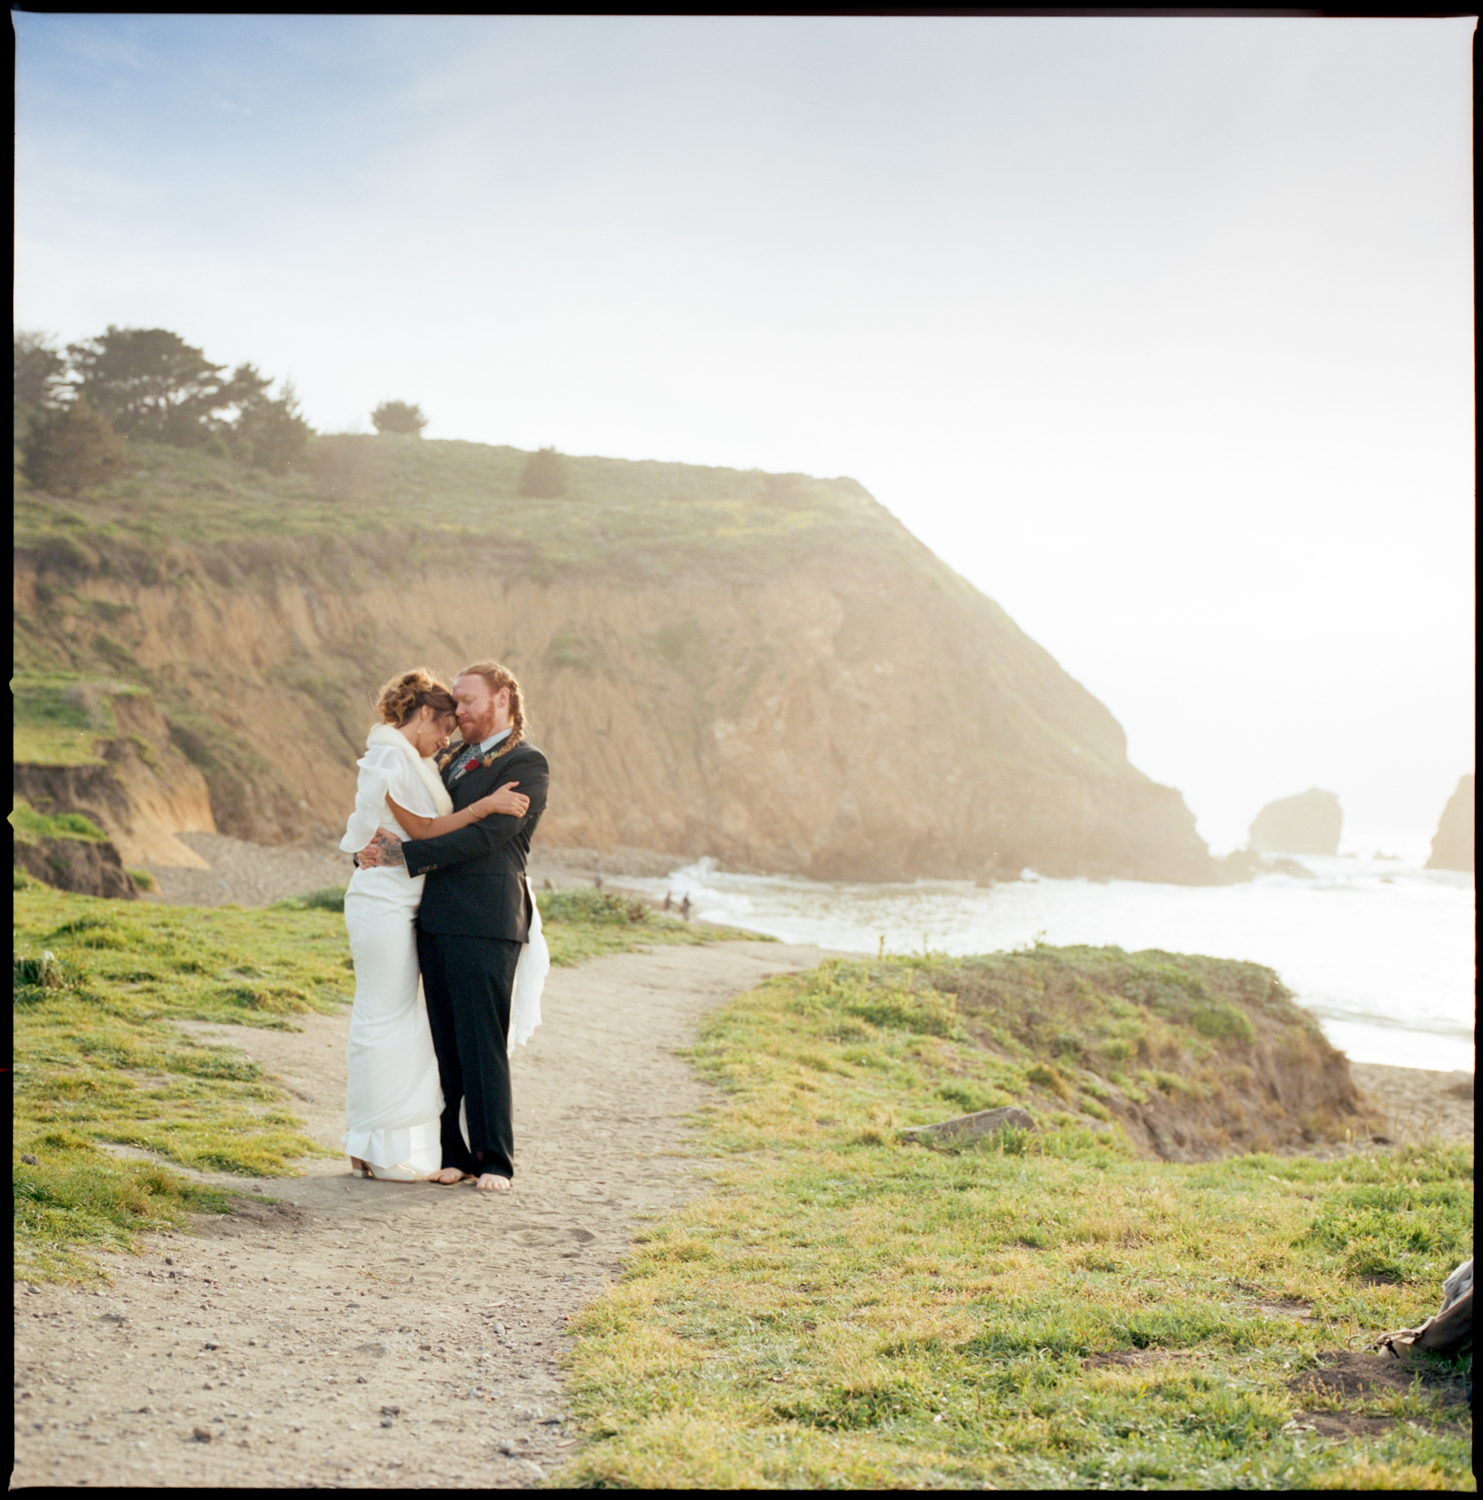 Pacifica_Beach_Surfer_Wedding_125.jpg